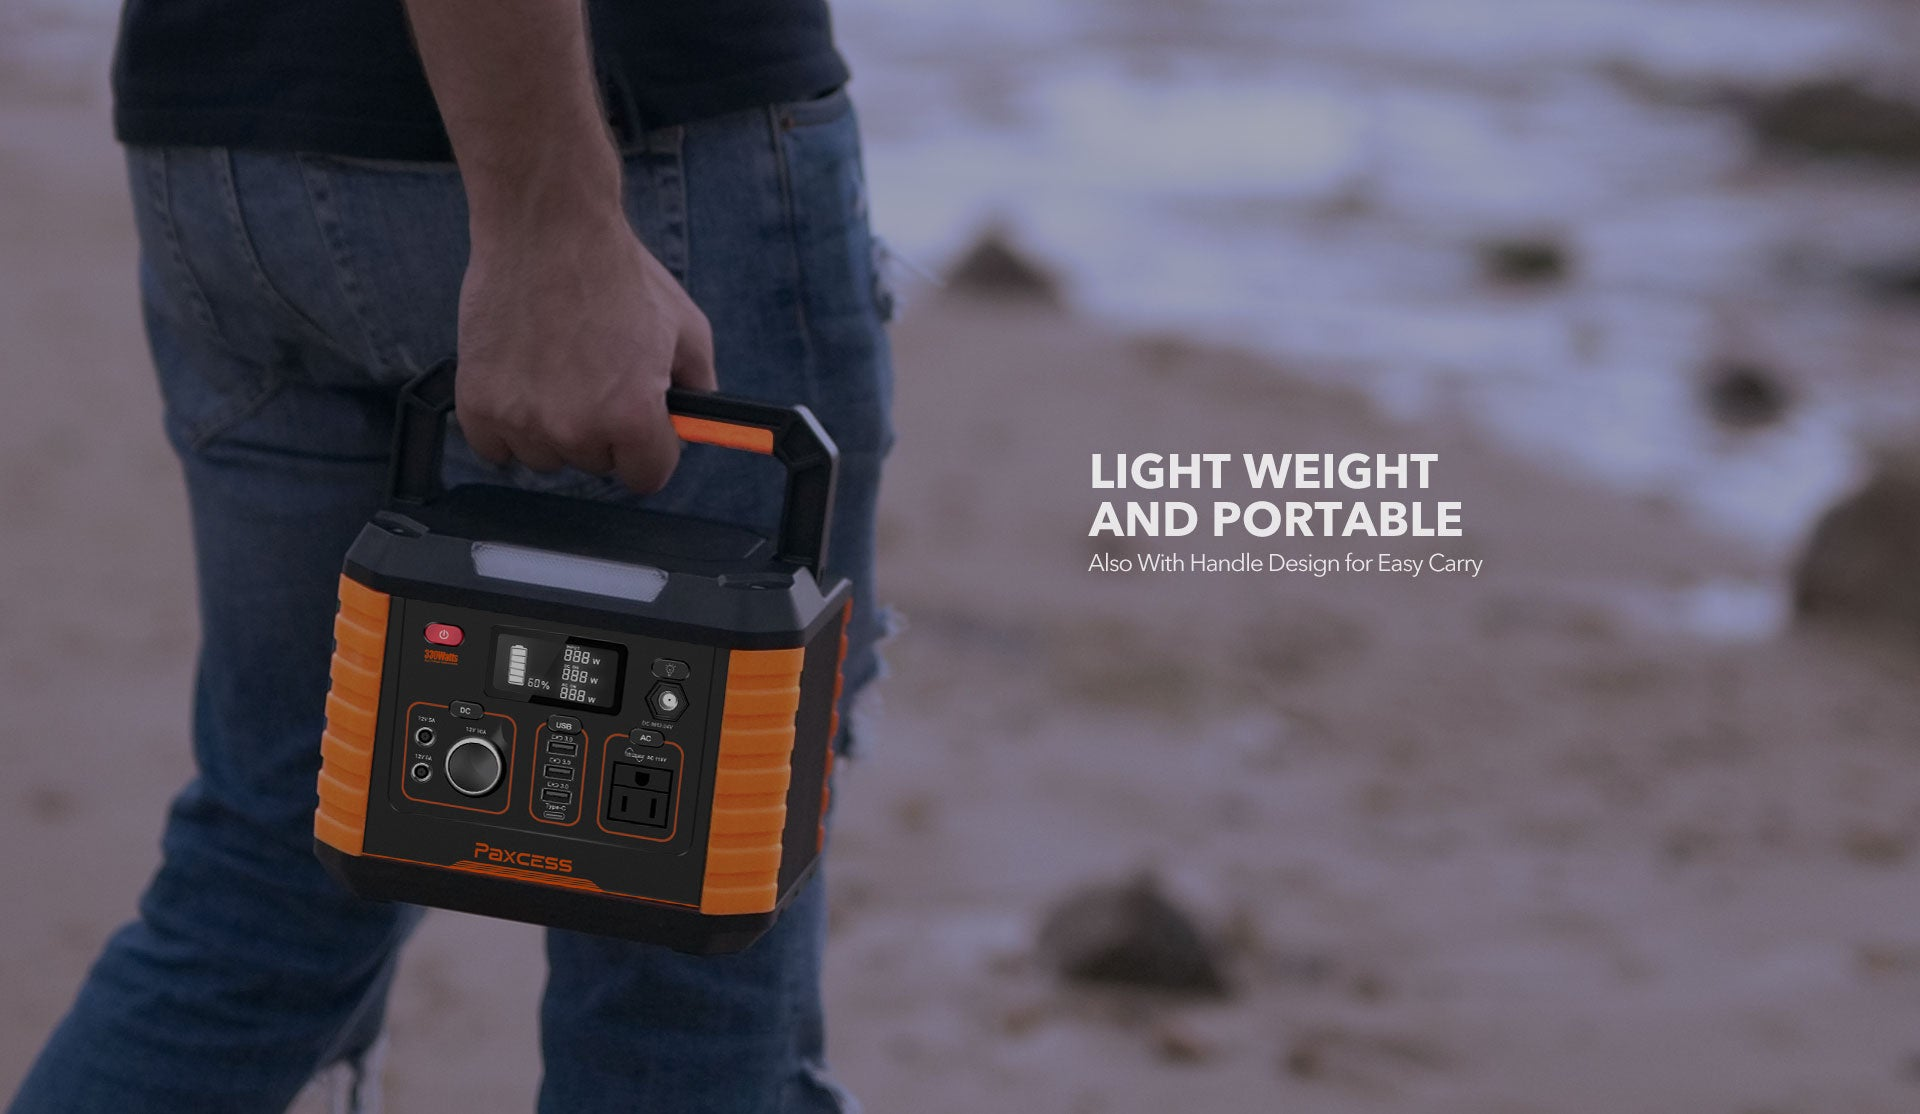 Paxcess 330W Portable Power Station Lightweight